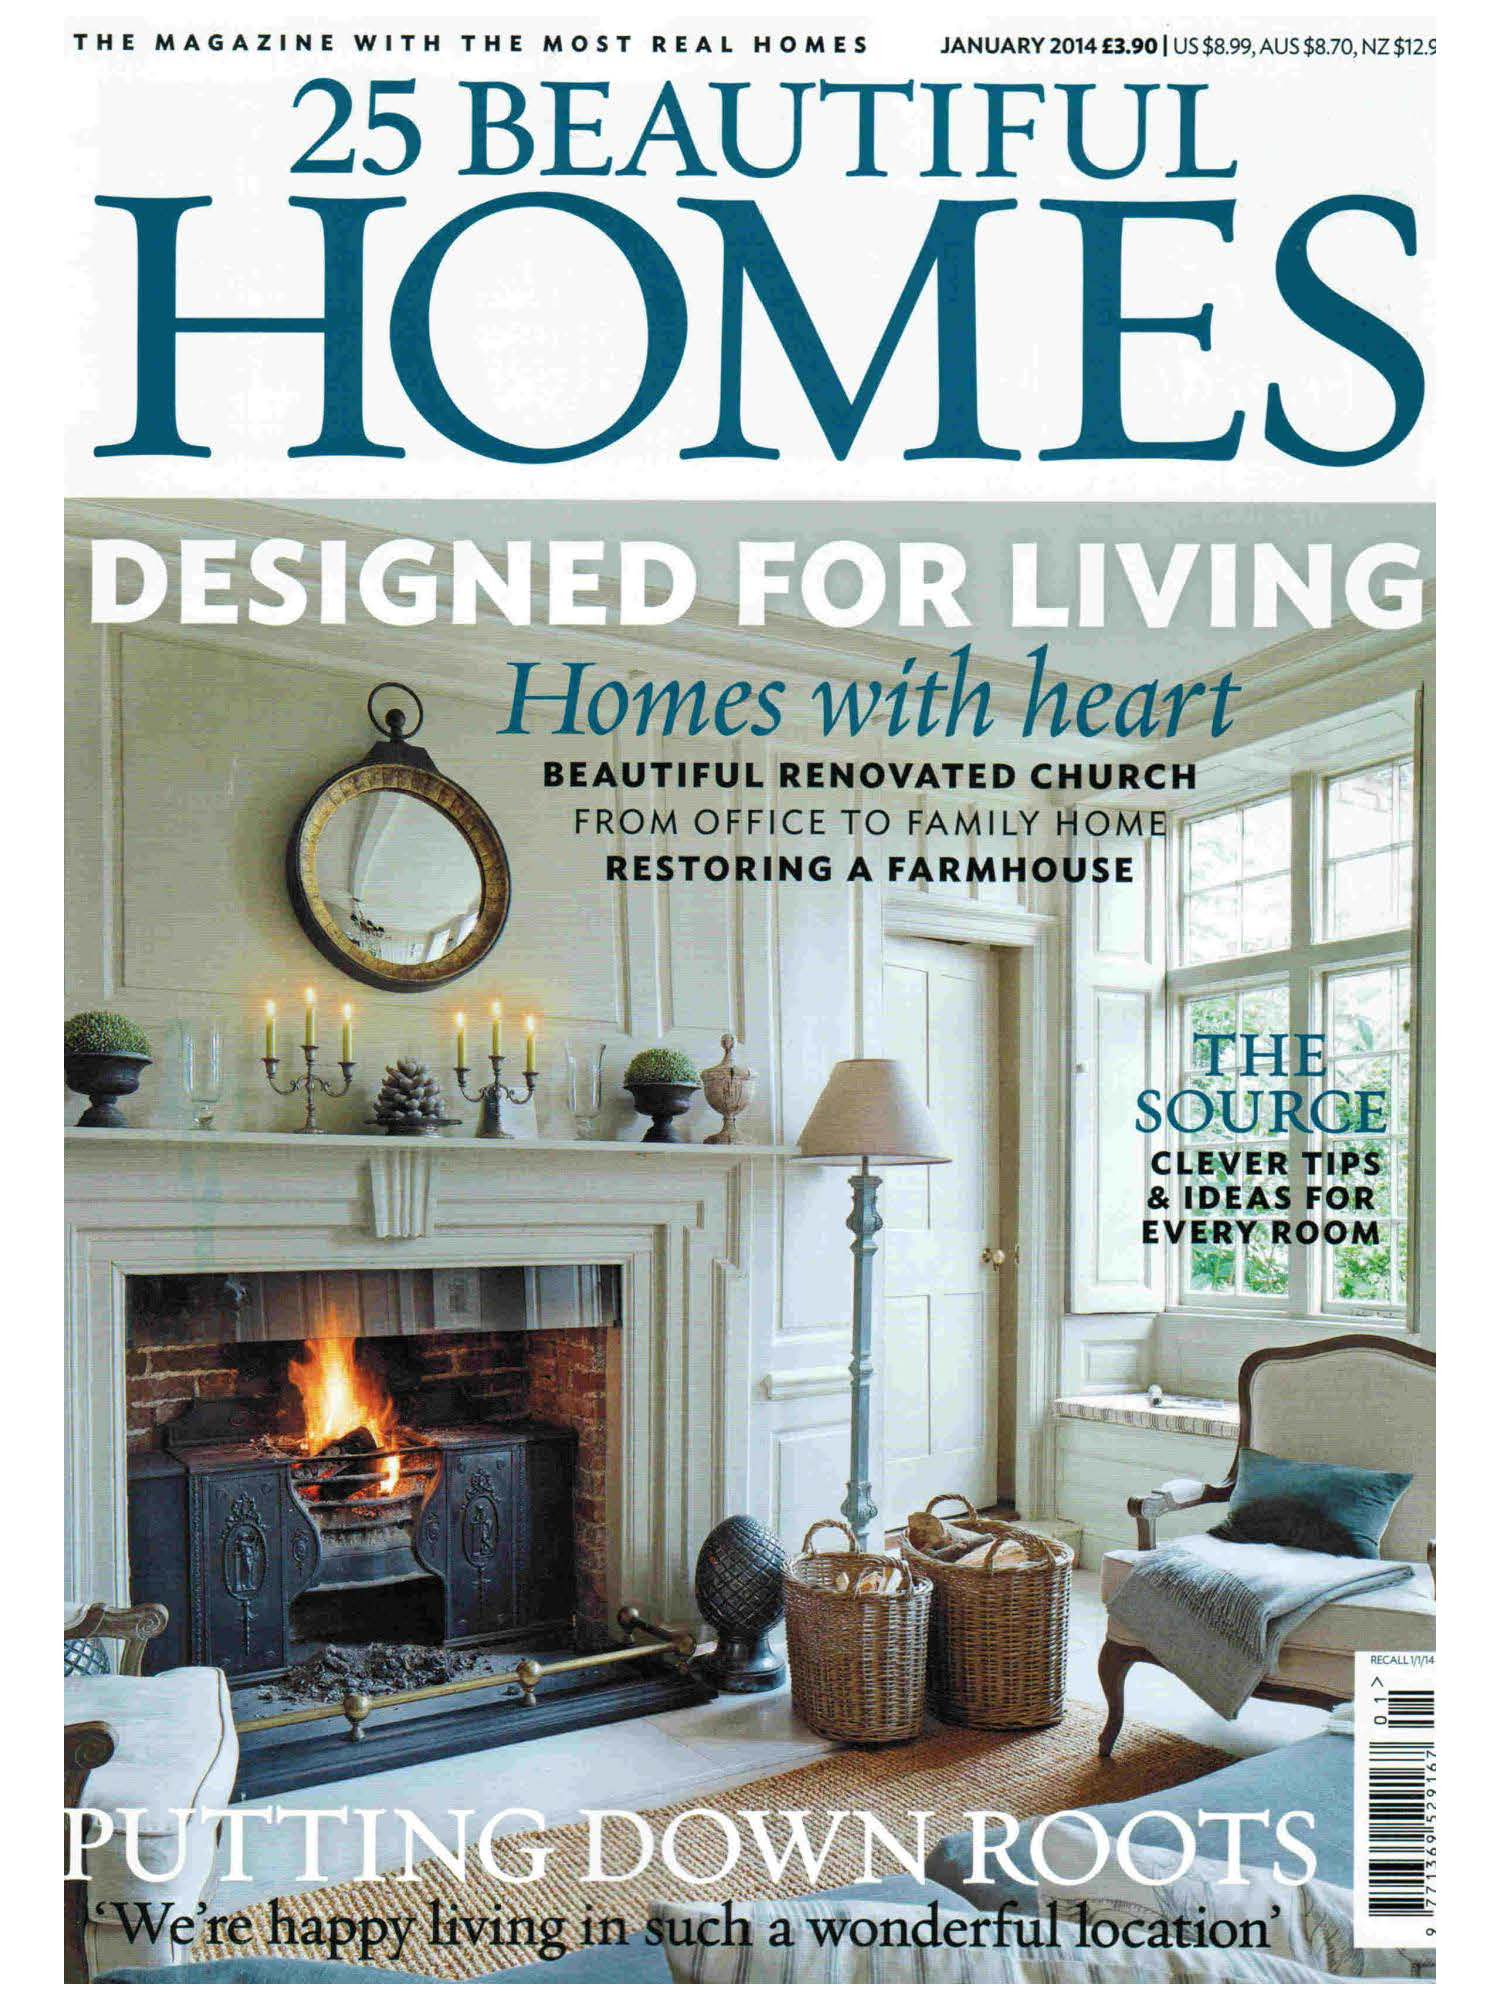 dog, dogs, style, magazine, press, editorial, homes, home, living, blue